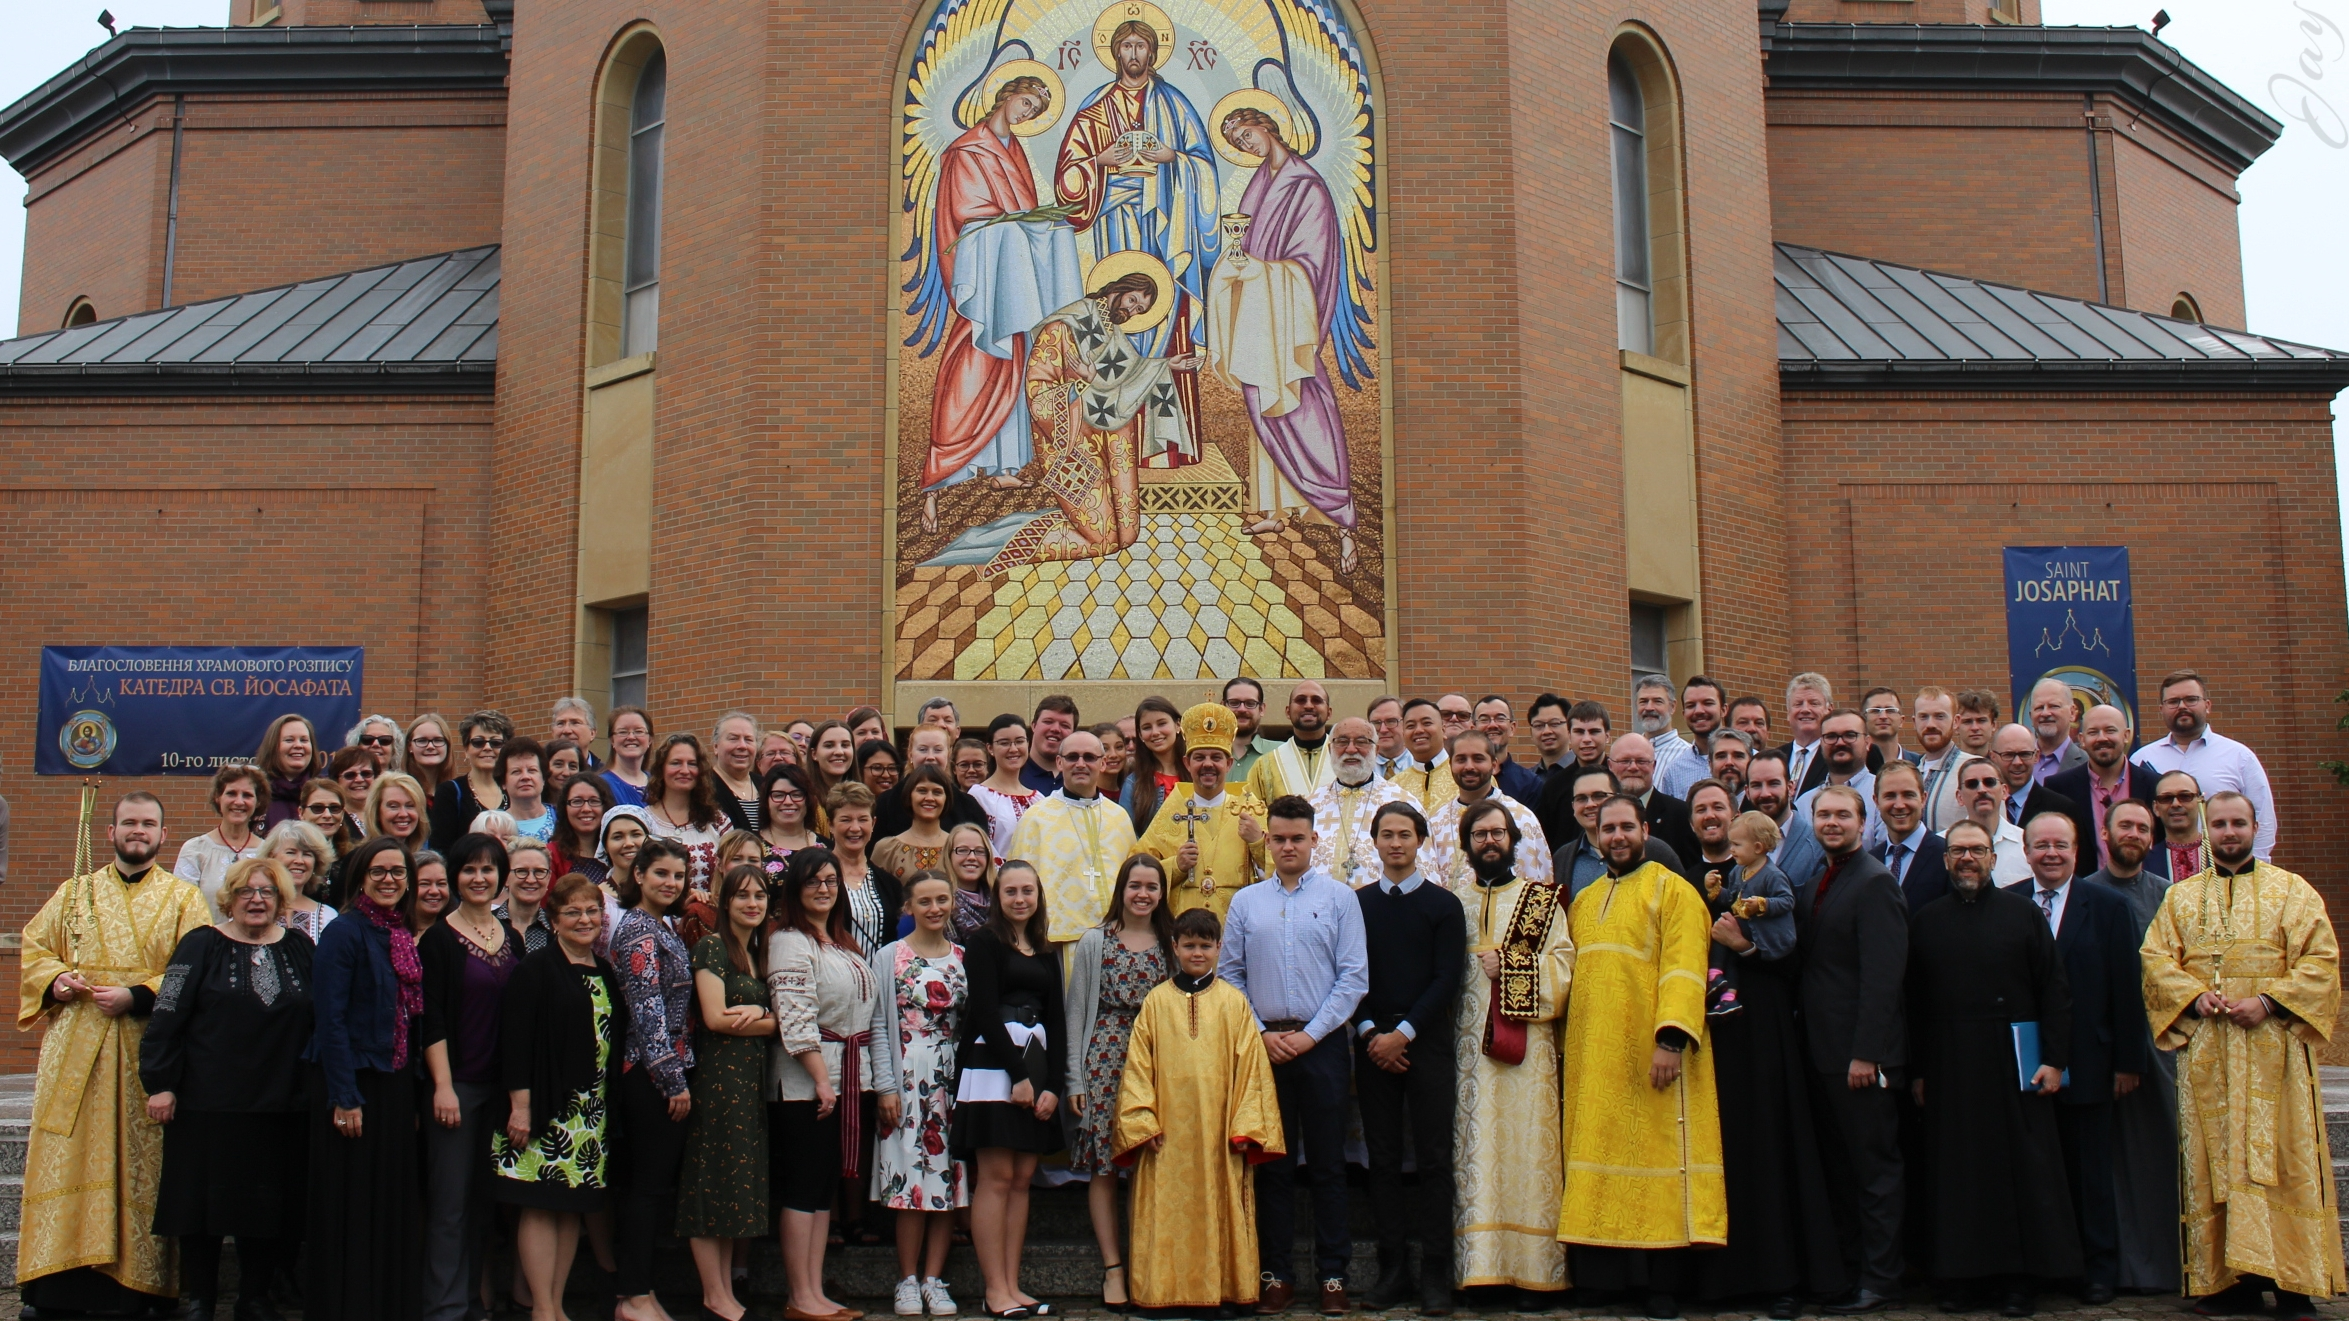 Participants of SINGCON 2018 St. Josephat's Cathedral, PARMA OHIO October 7th photo J.Korban